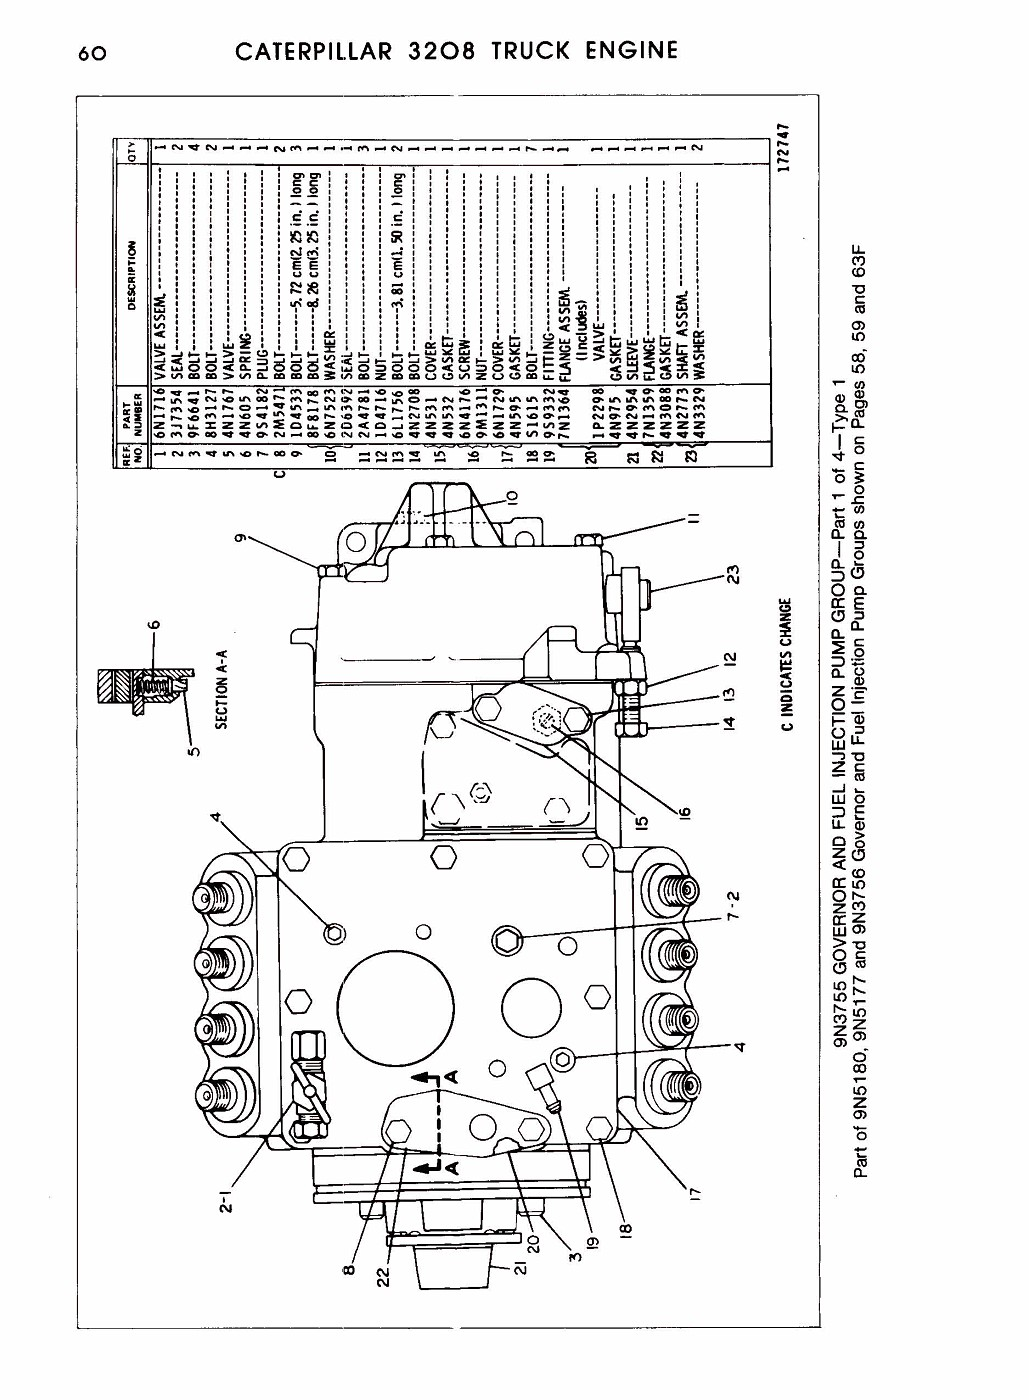 caterpillar 3208 marine engine parts manual    bitcoin shop